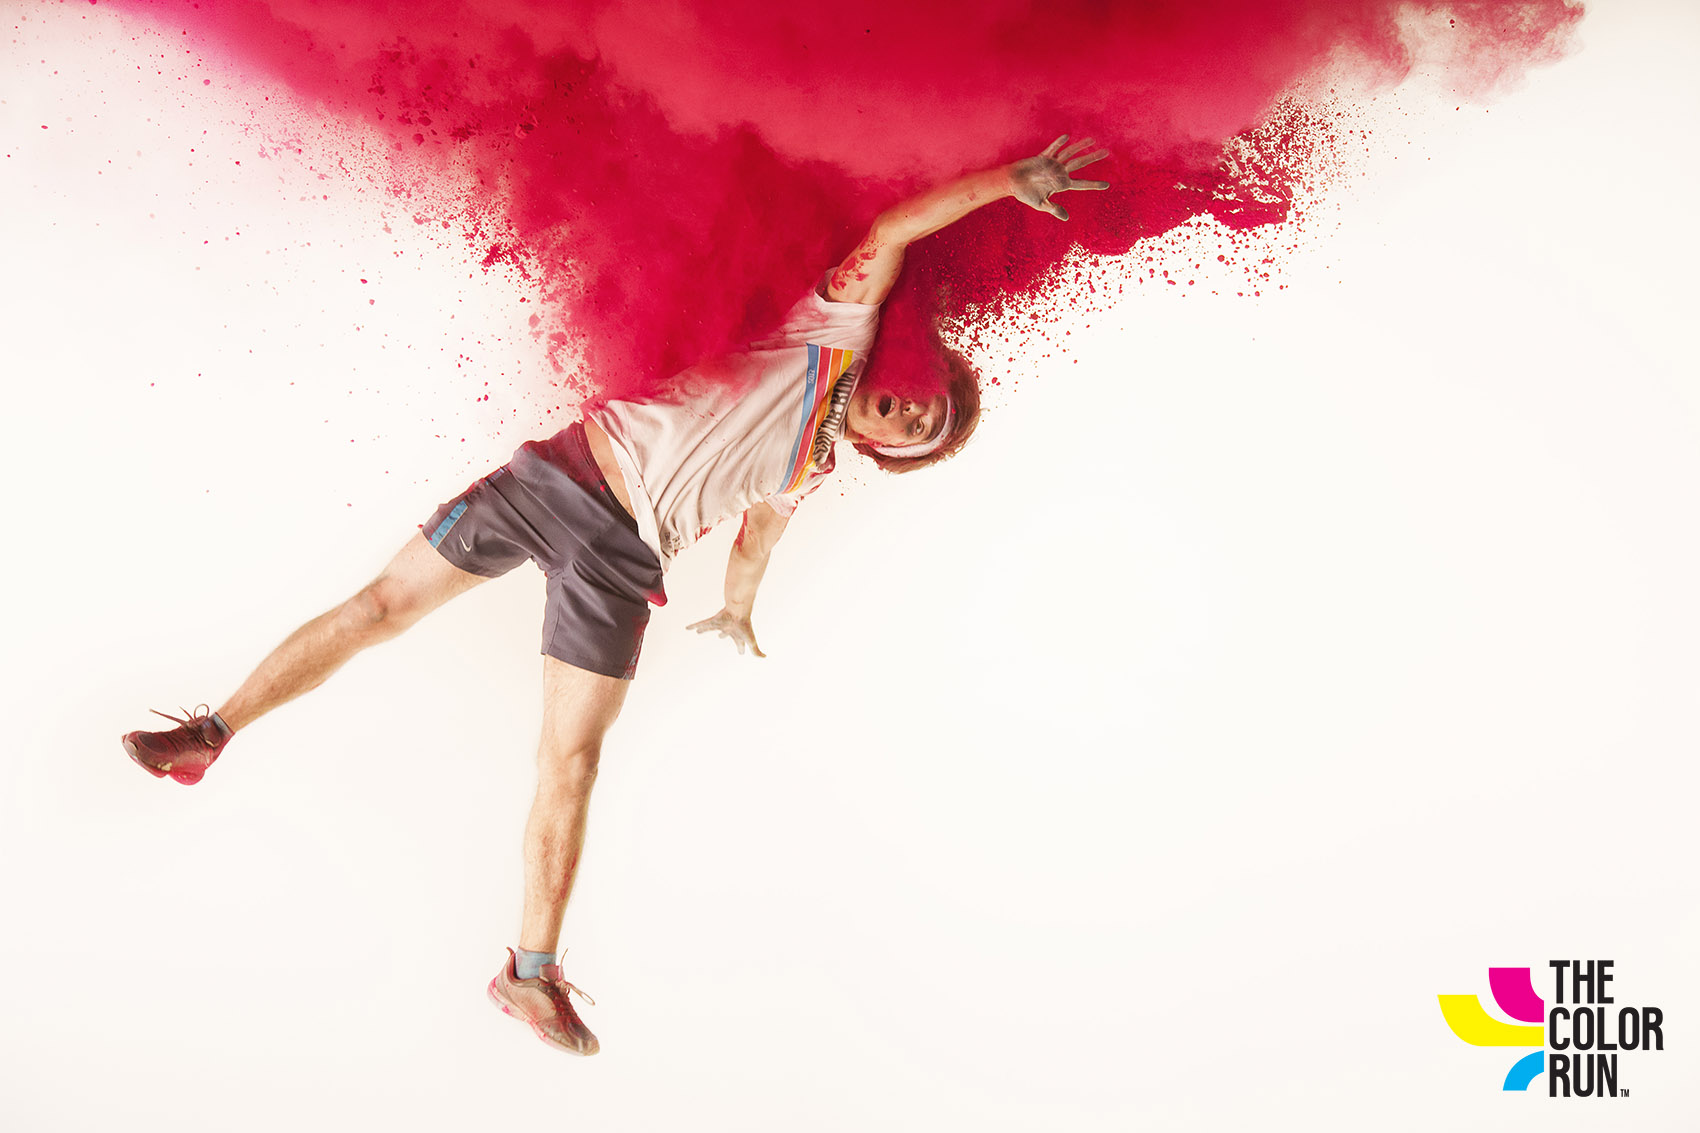 Color run red